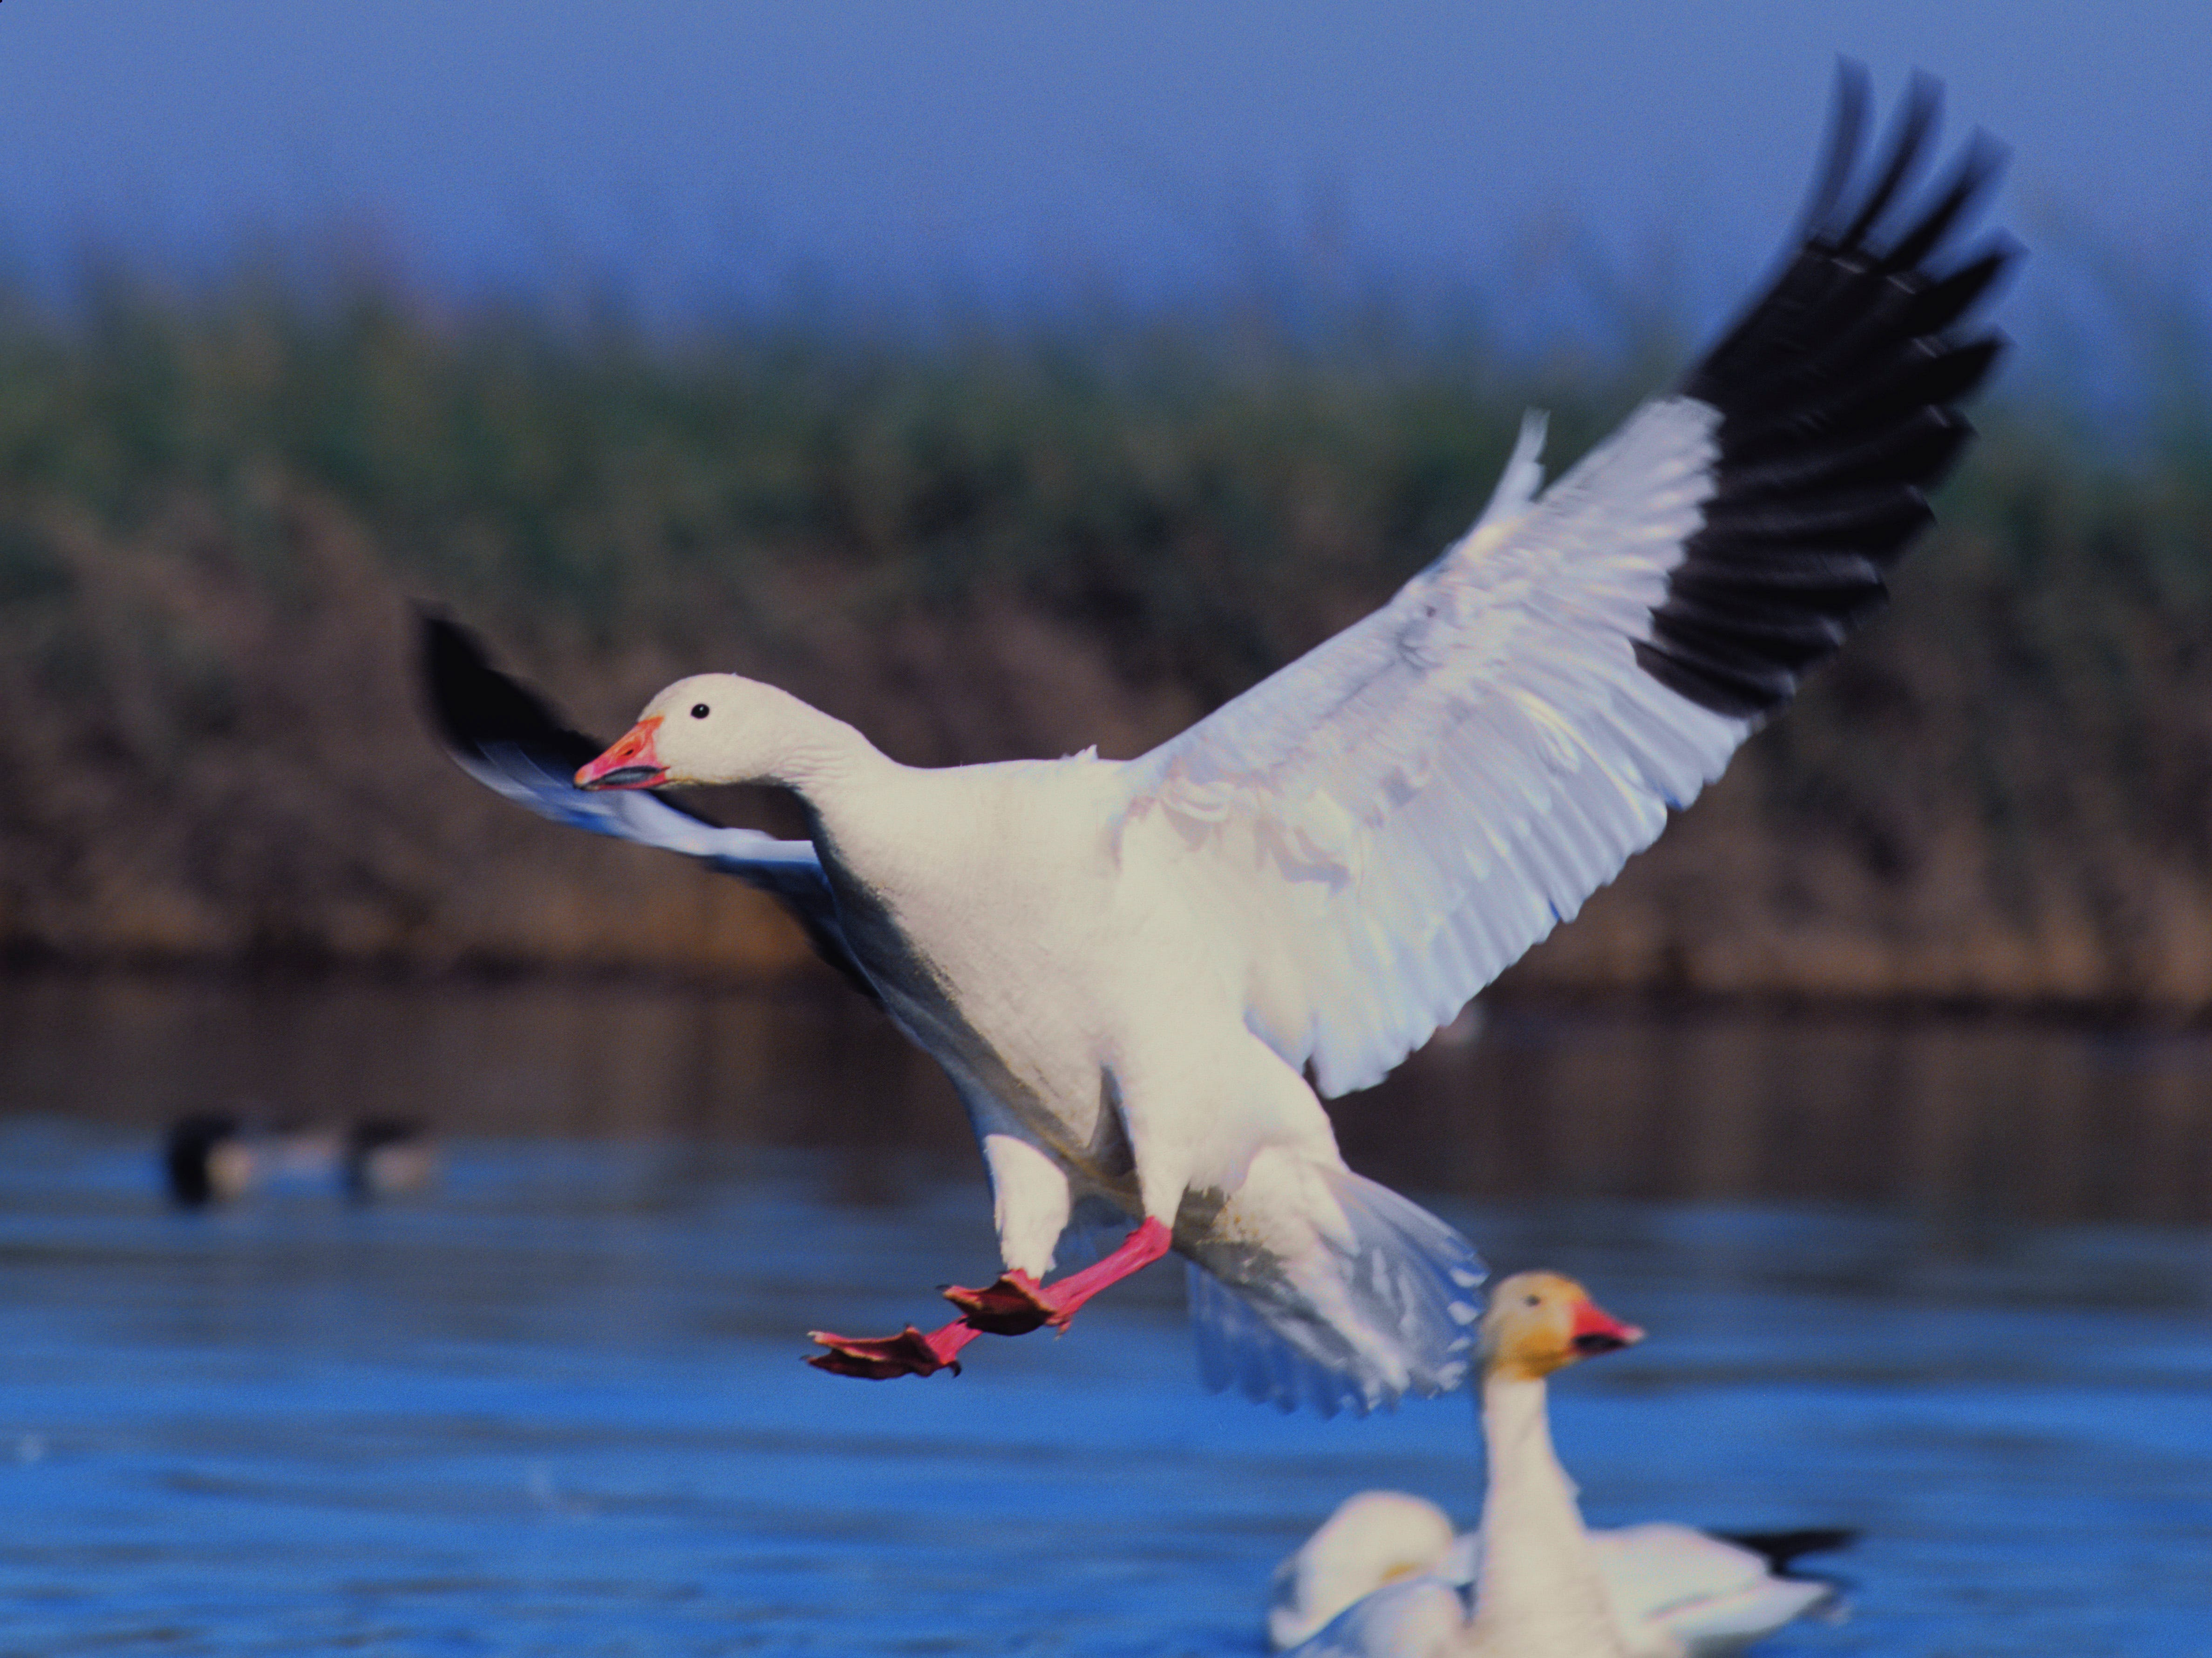 In and around Chico, the 20th annual Snow Goose Festival meets Jan. 24-27. Free events take place on Jan. 26-27. The festival's purpose is to encourage preservation of wetlands and celebrate the contribution snow geese make to the rice farms.